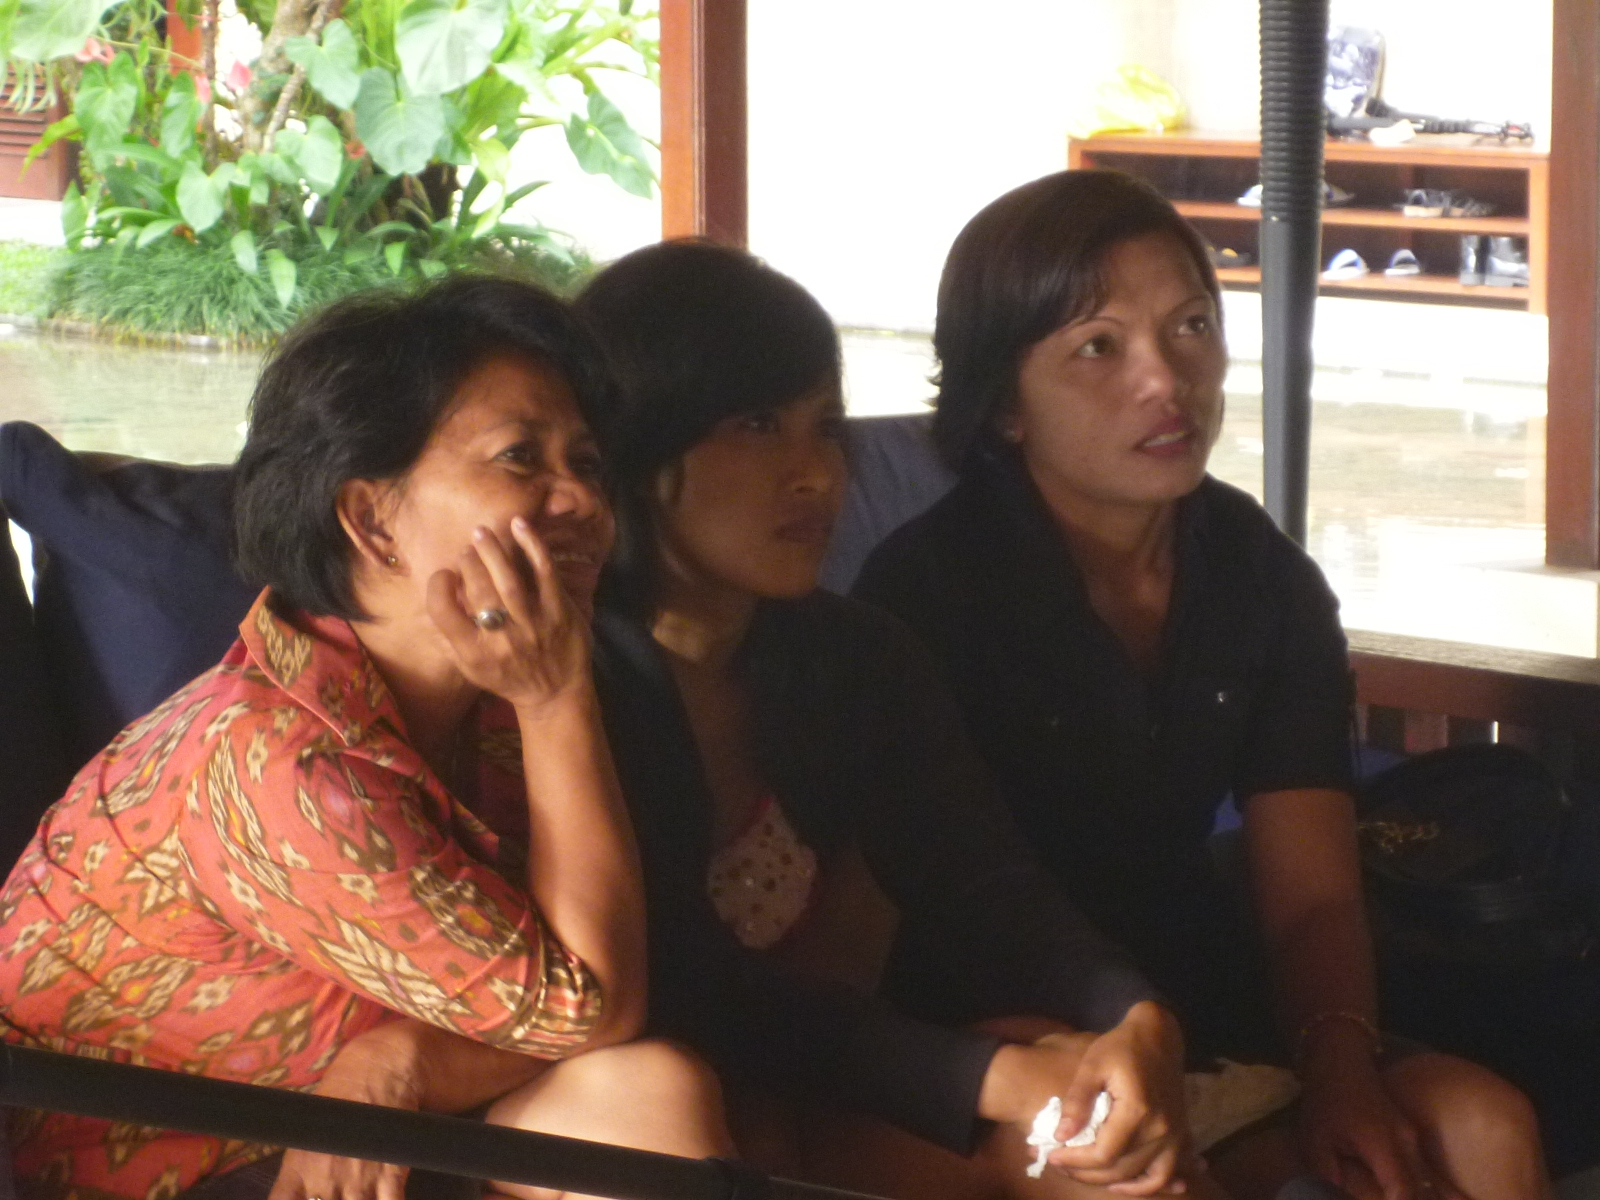 Private screening. From left: Mrs. Anggreni, local collaborator Sri, and Dewi